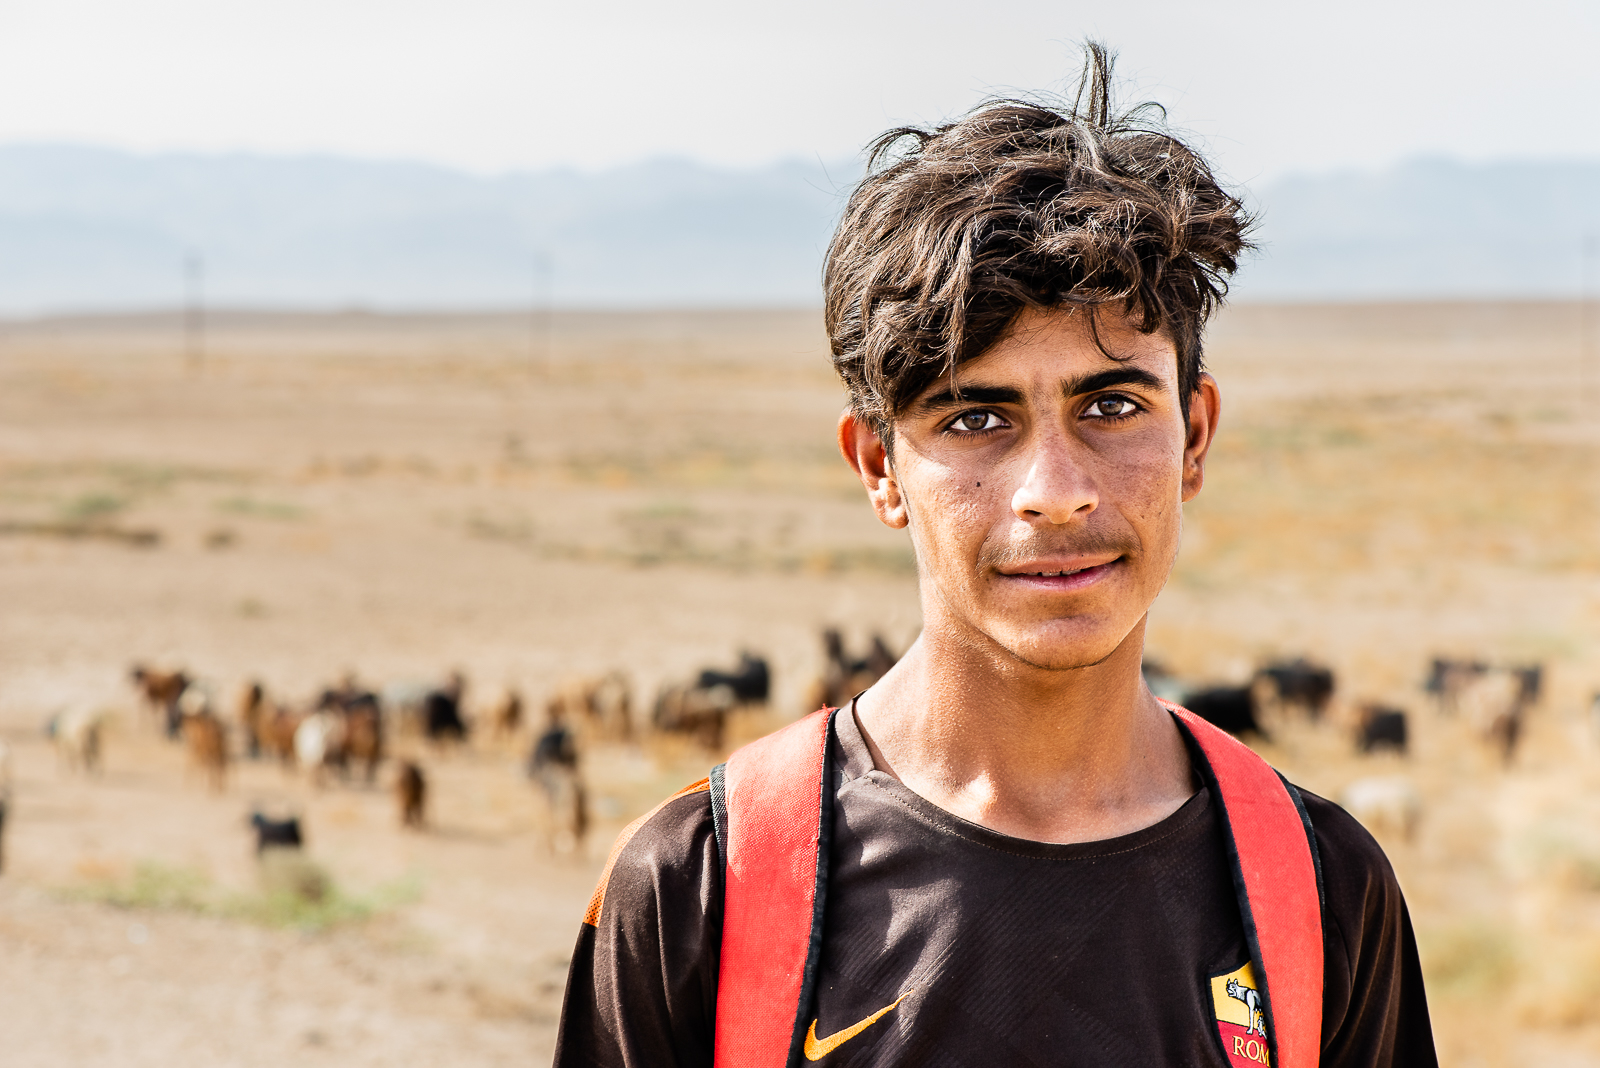 A shepard with his sheep in background under the Sinjar Mount